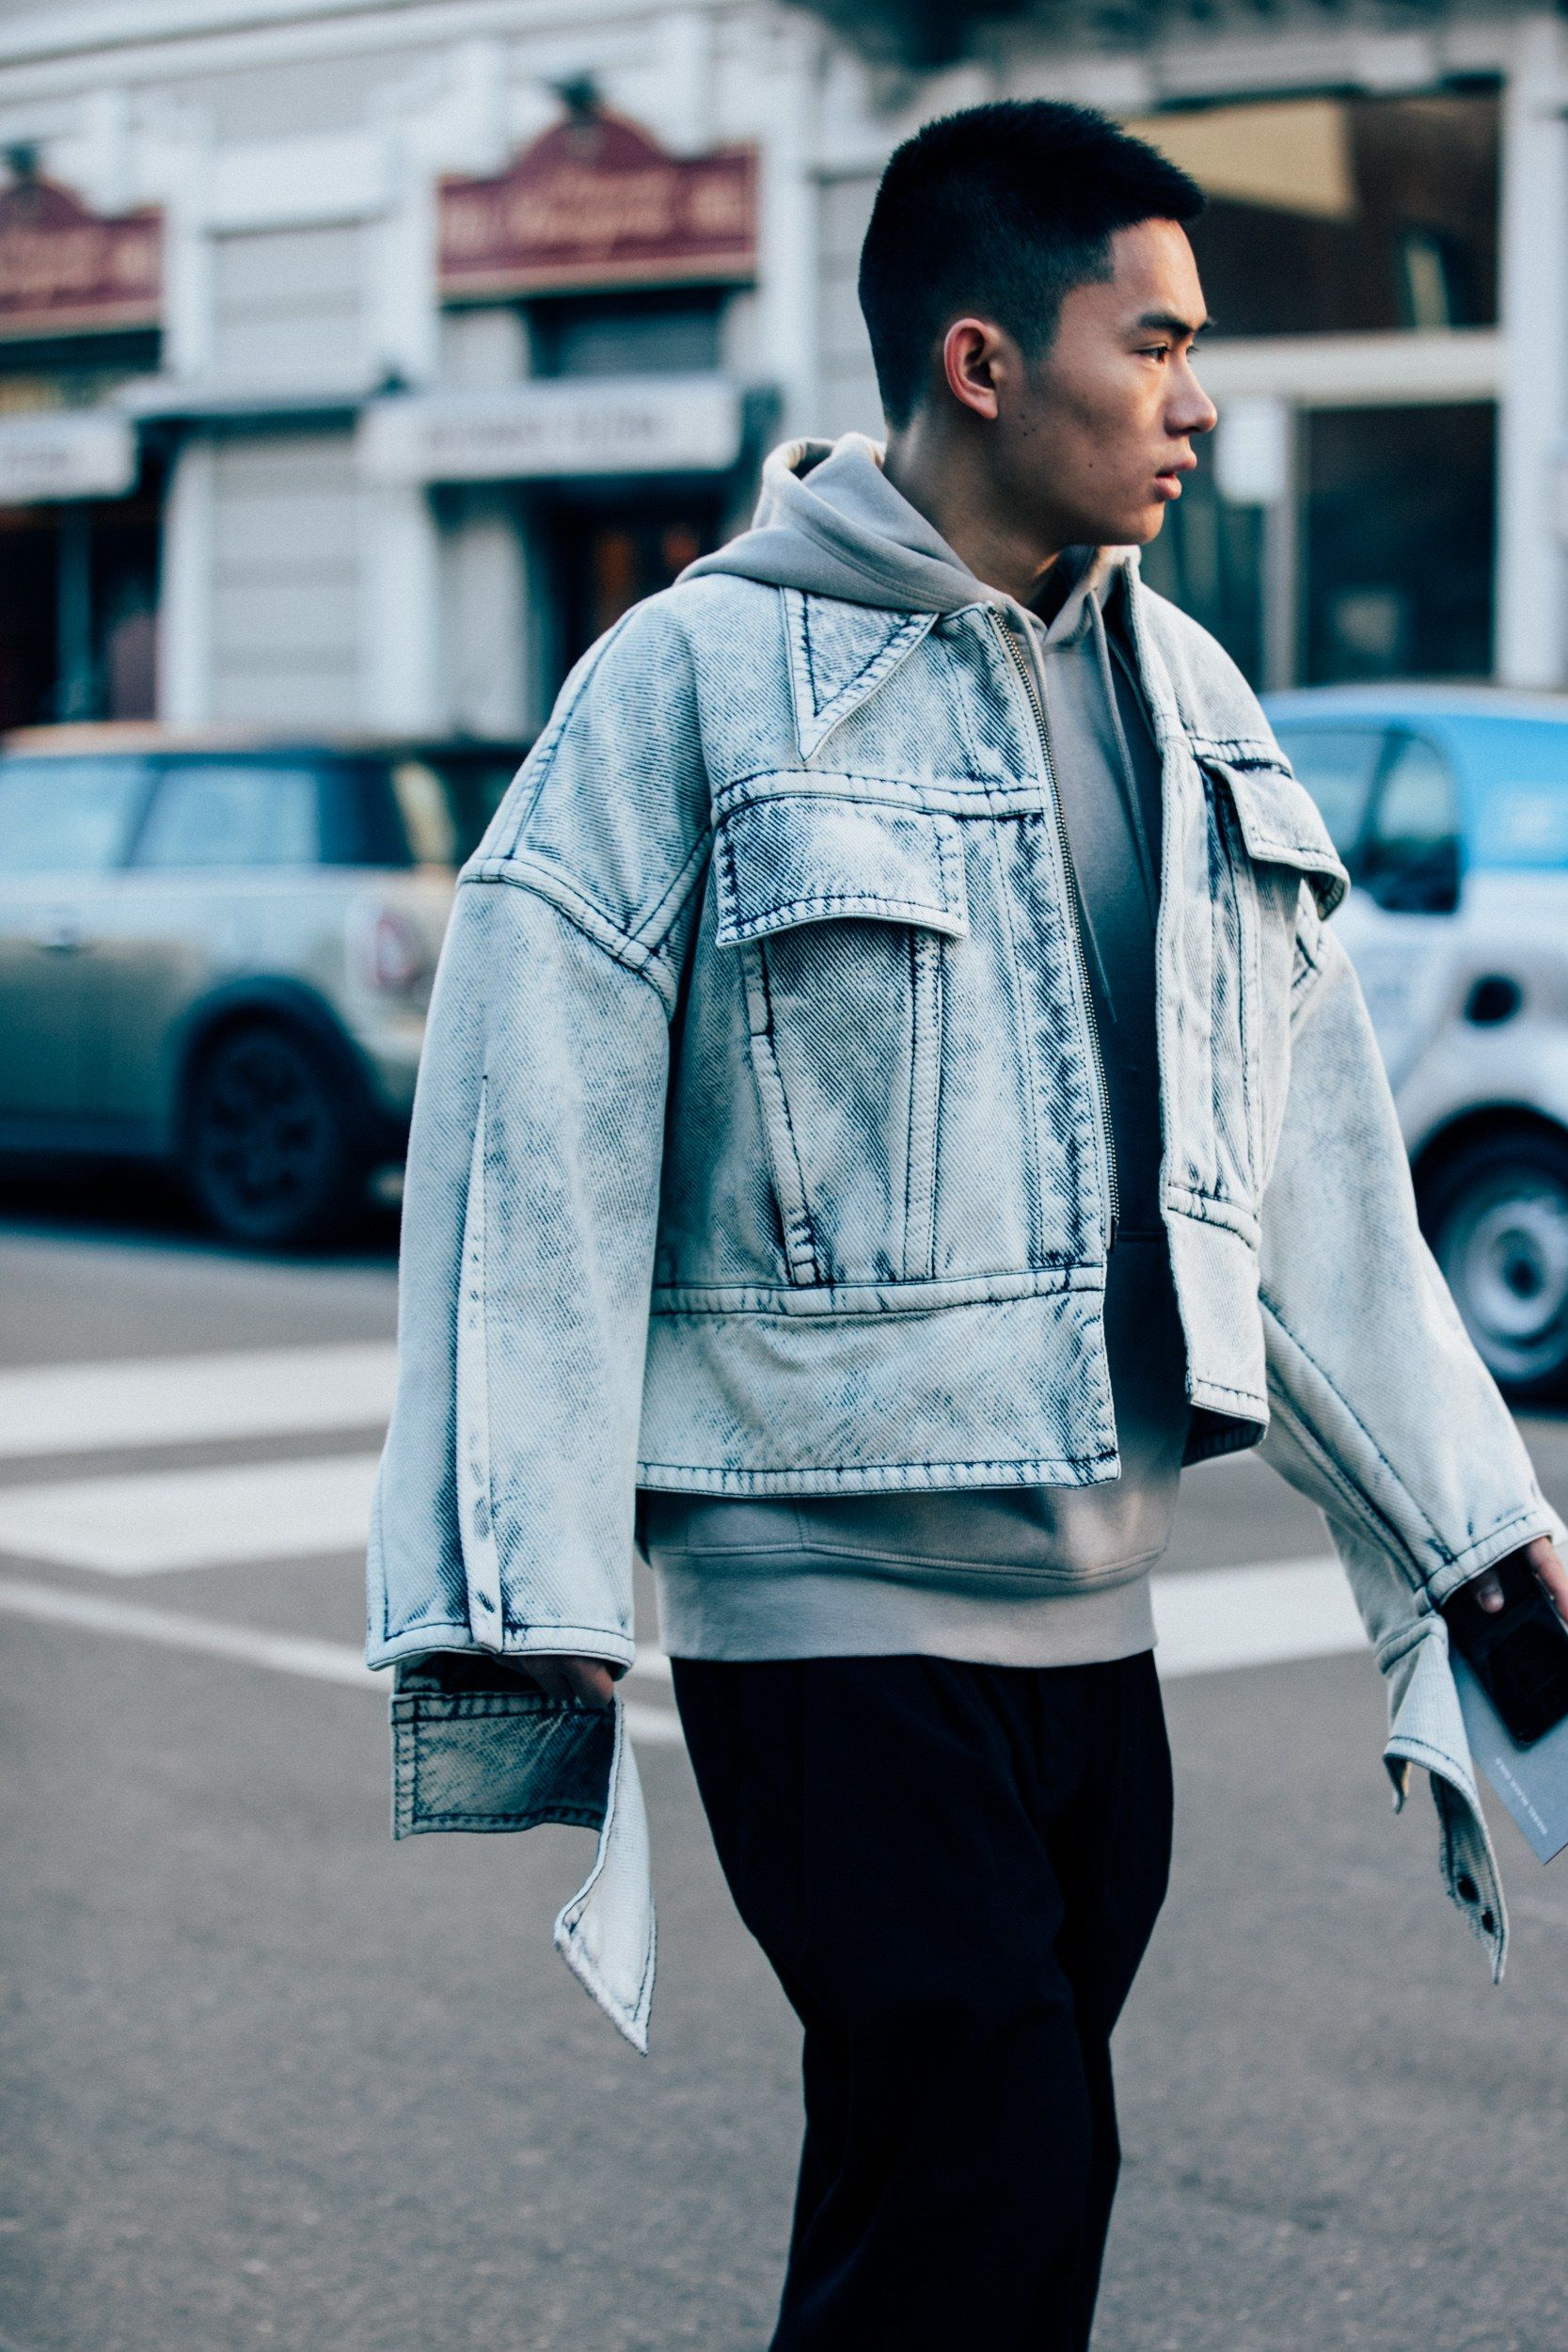 The Best Street Style from Milan Fashion Week Photos | GQ